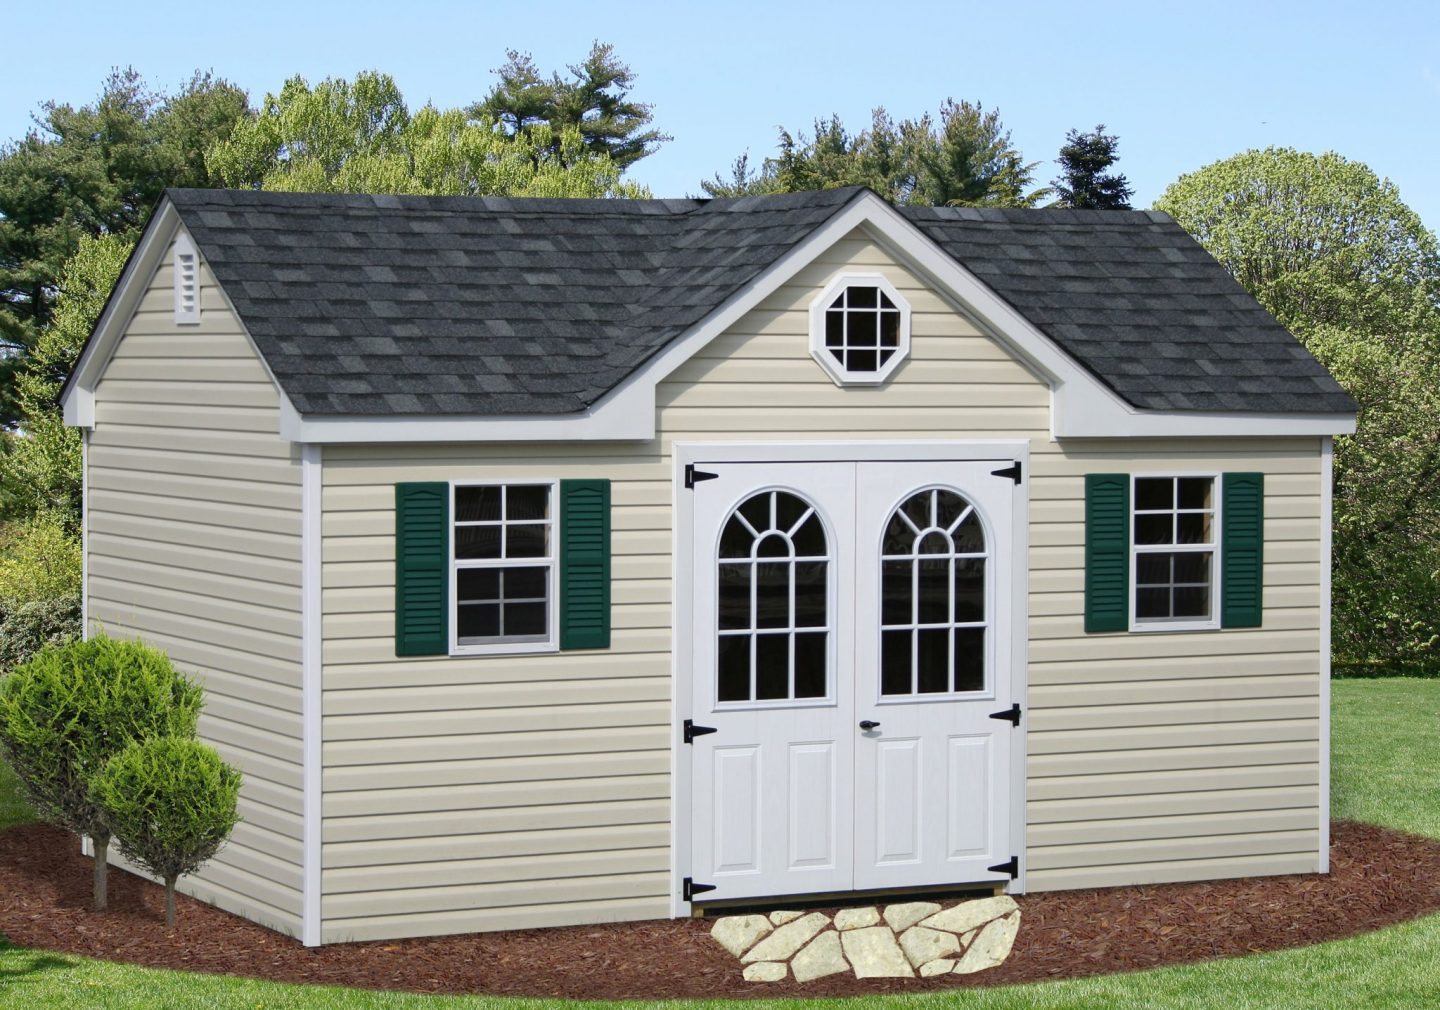 Shed Dormer Plans Dormer Styles Stoltzfus Structures